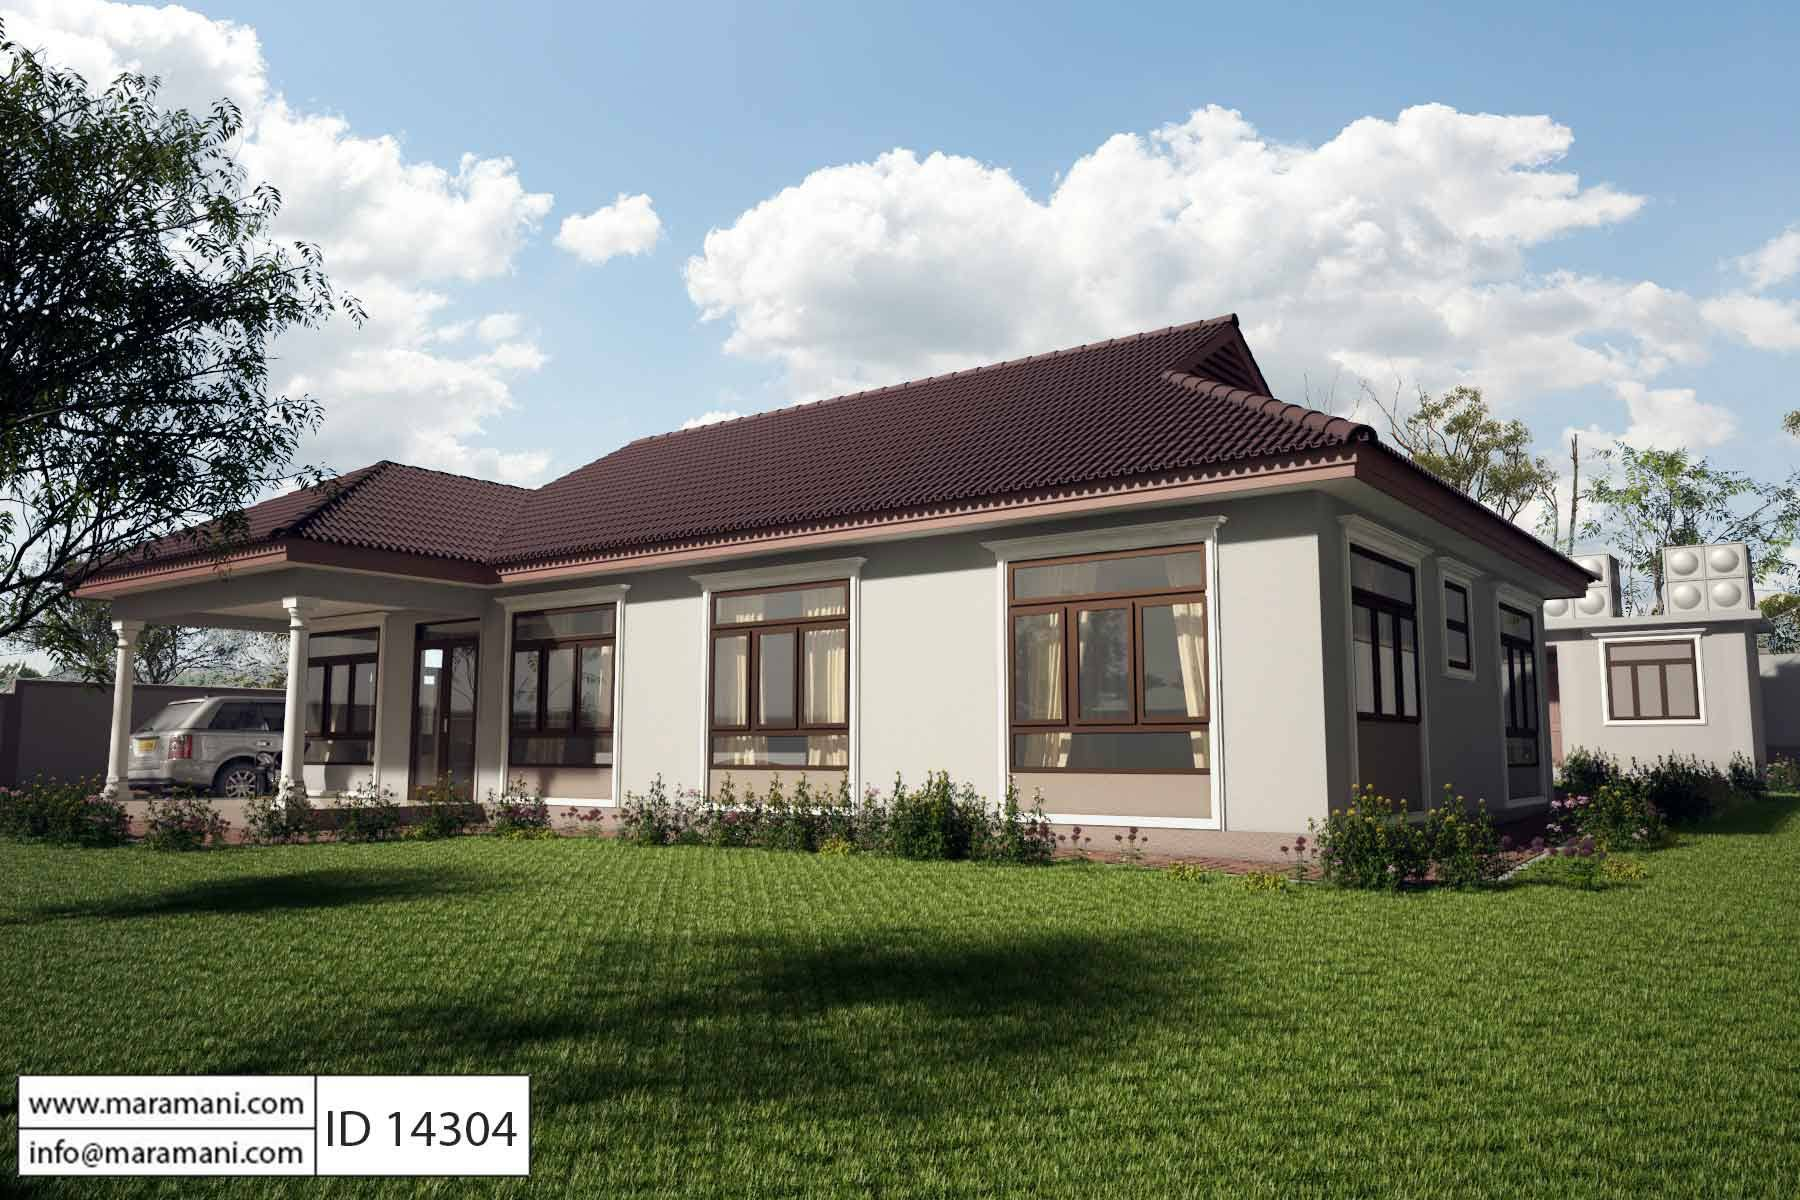 4 bedroom house plan id 14304 house plans by maramani for 4 bedroom cabin plans